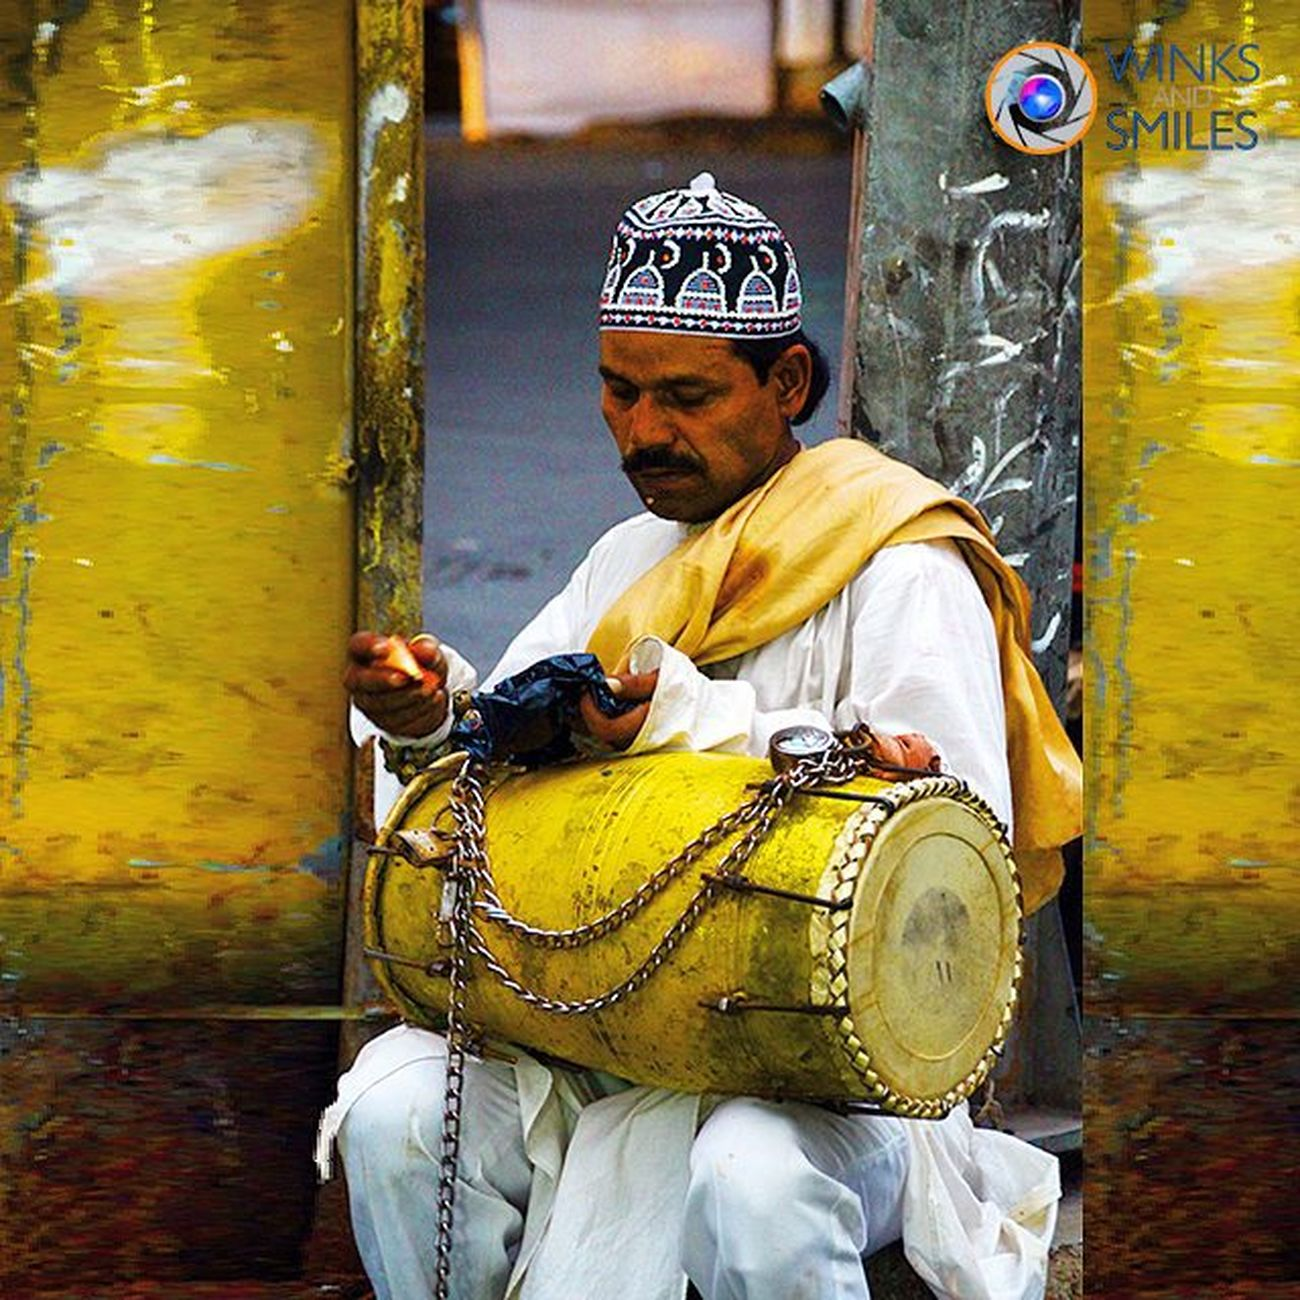 SAW THIS 'DHOLAK MAN' BREAKING HIS ROZA (FASTING DURING THE HOLY MONTH OF RAMZAN) NEAR MINARA MASJID, MUMBAI 👨🎼🎵🎶🌙 Ramzan Ramadan  Id Mohammadaliroad Minaramasjid Everydaymumbai India Convexrevolution Worldbestgram Salisonline MumbaiDiaries Indiaoninstagram Indianphotographer Desidiaries Streetphotographer Photographers_of_india Instapicture Instapics Streetfood Natgeotravellerindia Vscoindia _soi Wassupindia Followforfollow Likeforlike ig_photoclub click_india_click thingstodoinmumbai explorethroughcamera mumbairay